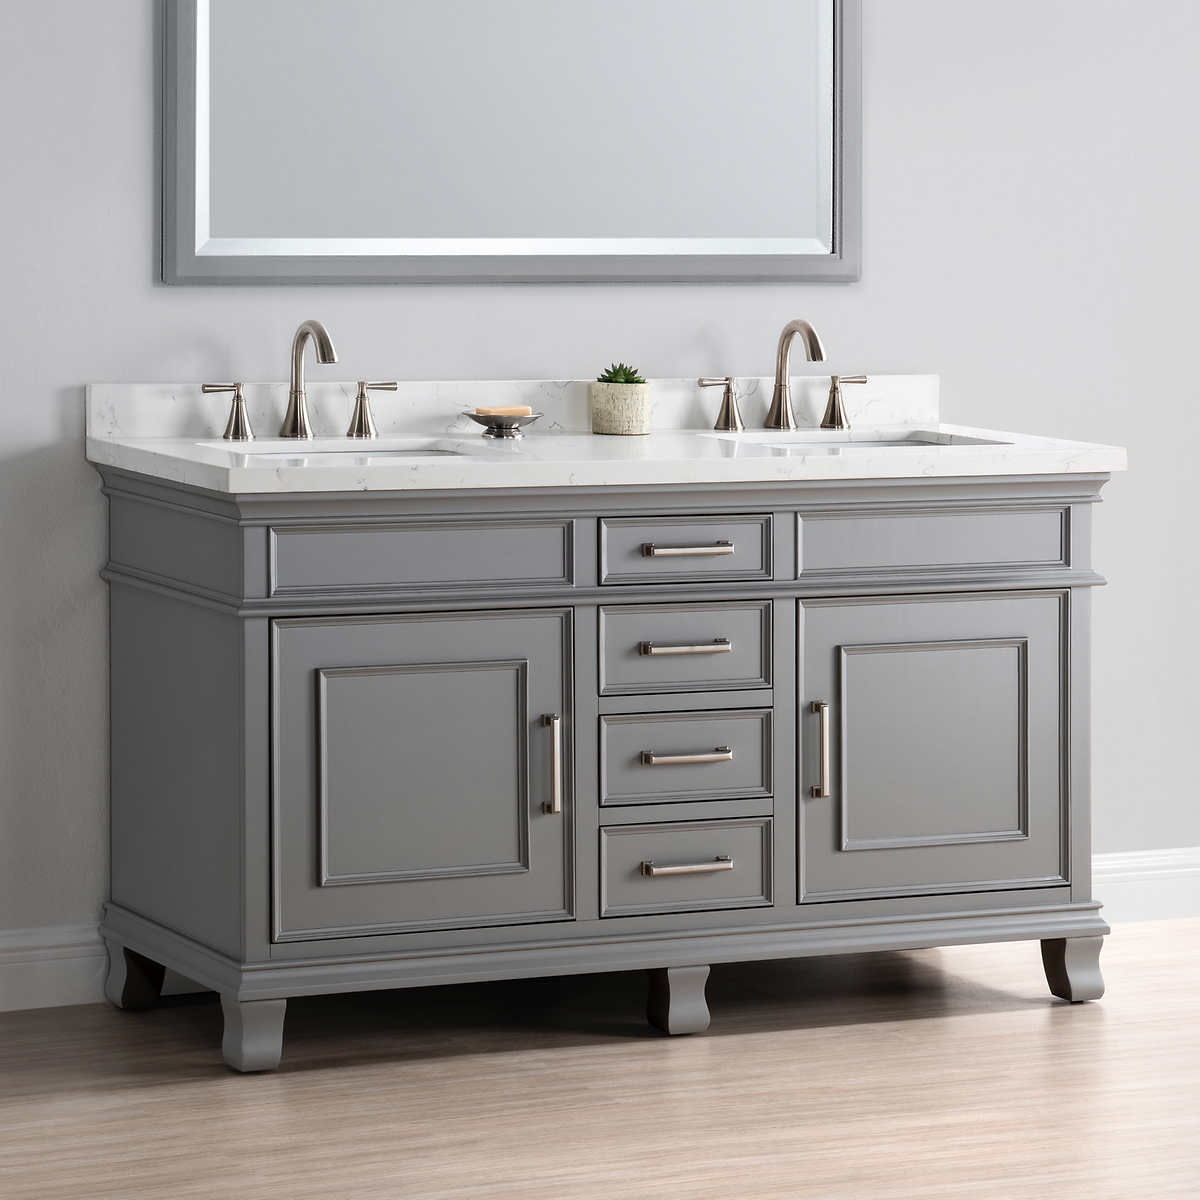 Picture of: Classy 60 Inch Double Sink Vanity